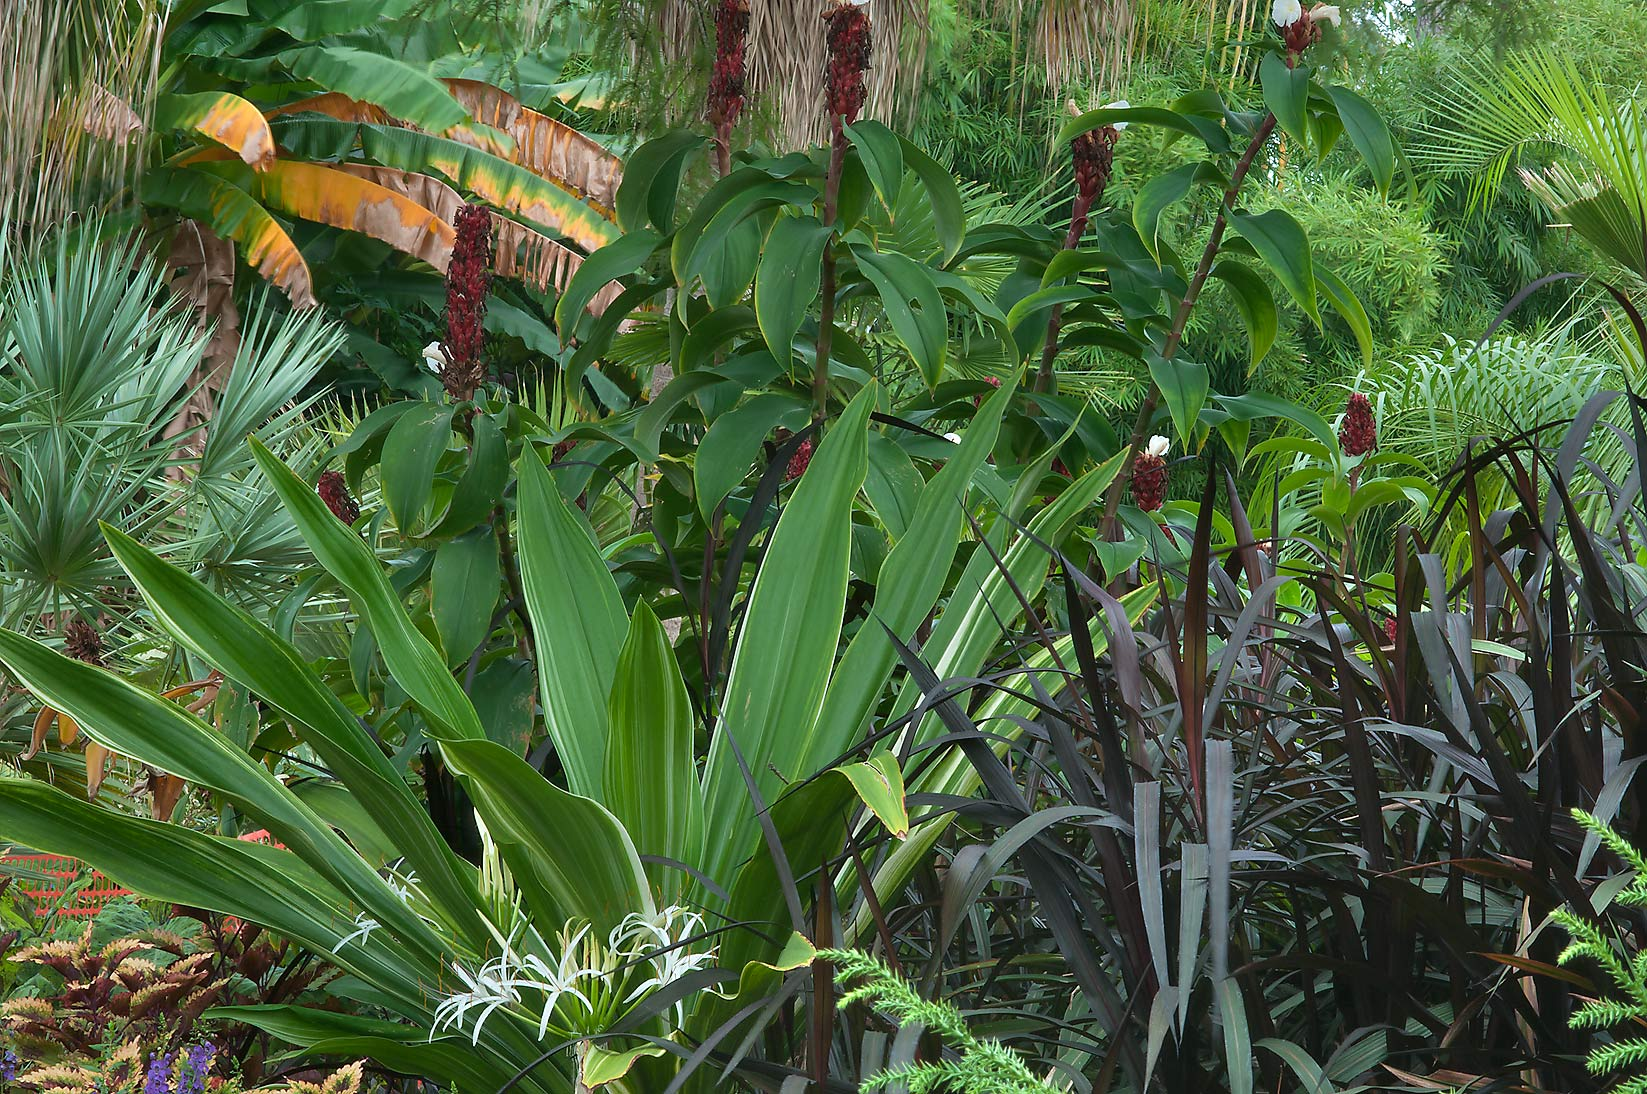 Tropical plants in Mercer Arboretum and Botanical Gardens. Humble (Houston area), Texas